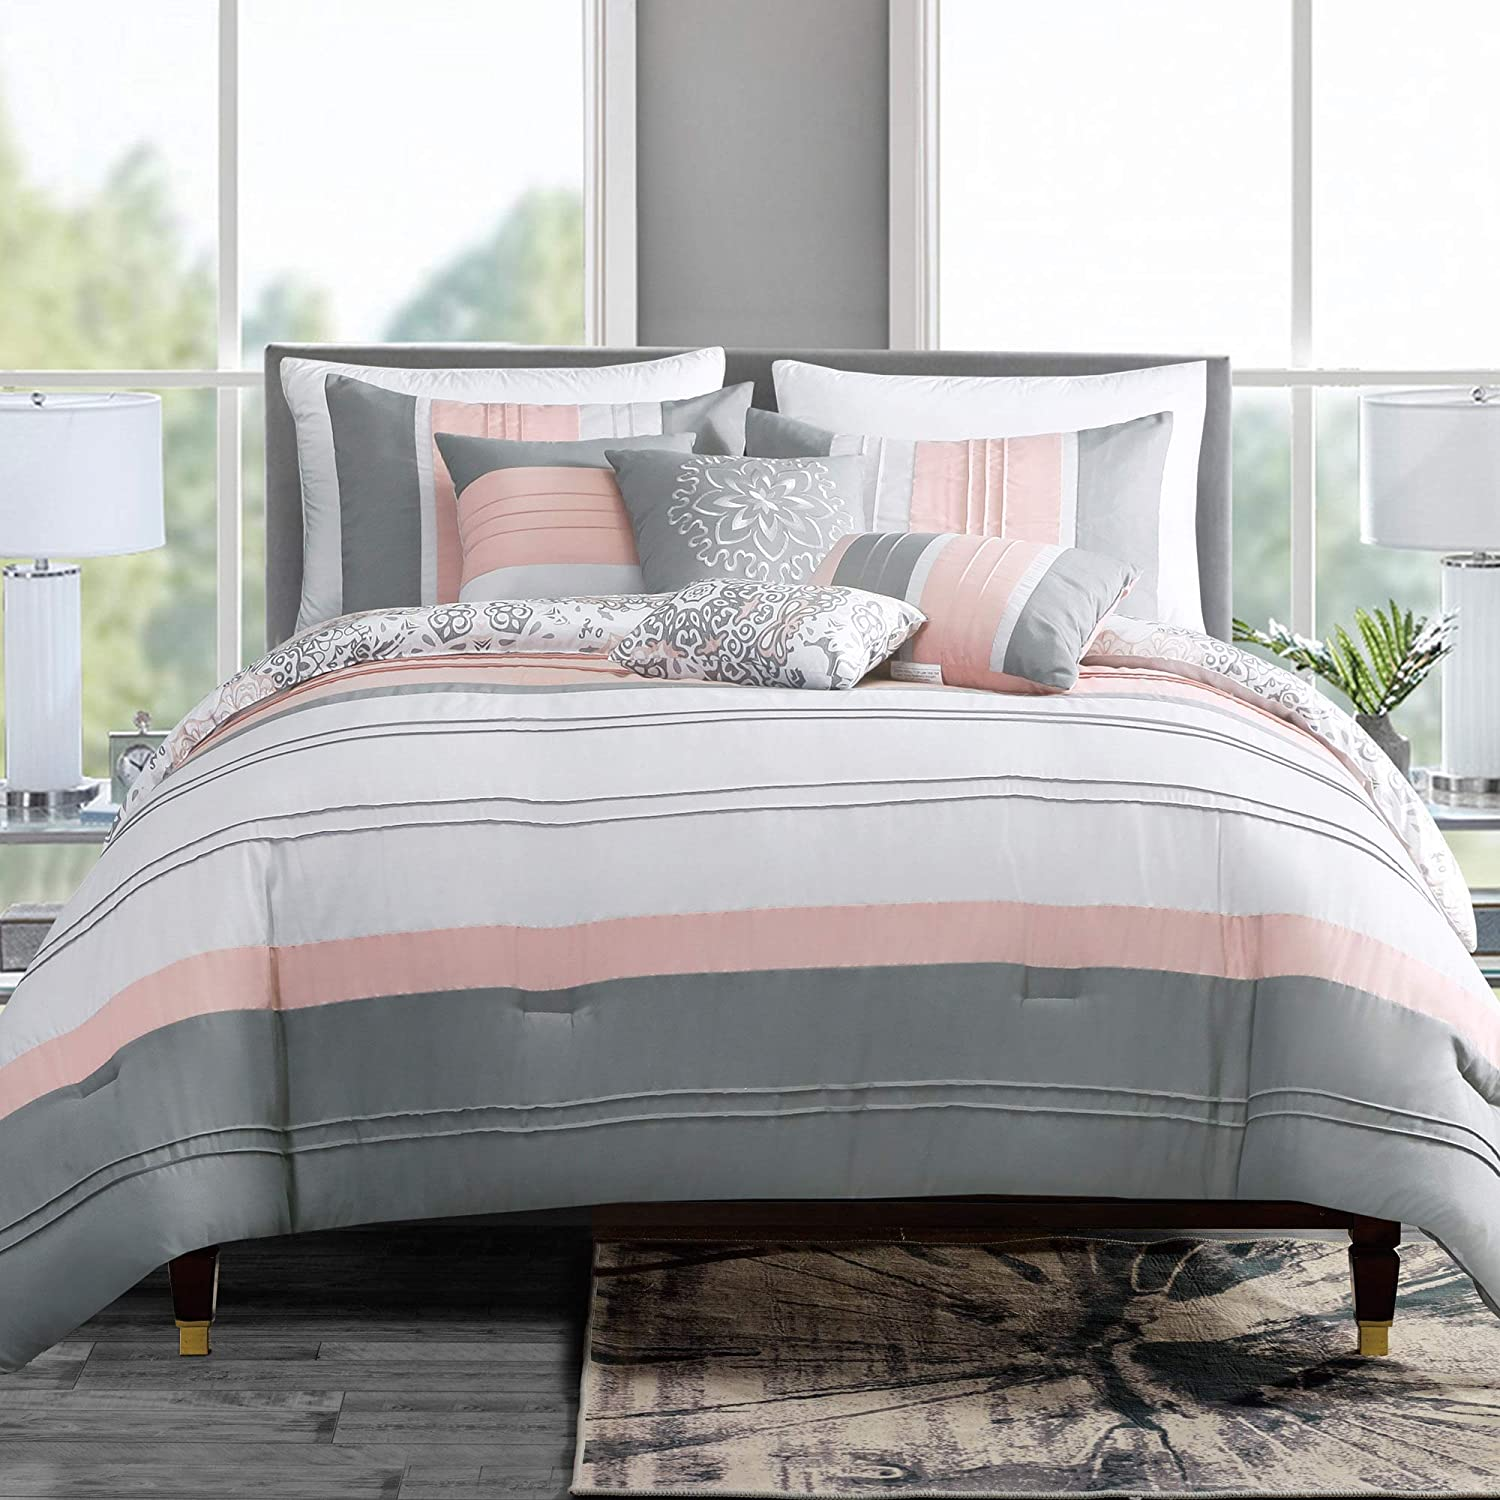 GrandLinen 7 Piece Coral Pink/Grey/White Abstract Design, Pleated Bed in a  Bag, Comforter Set King Size Bedding